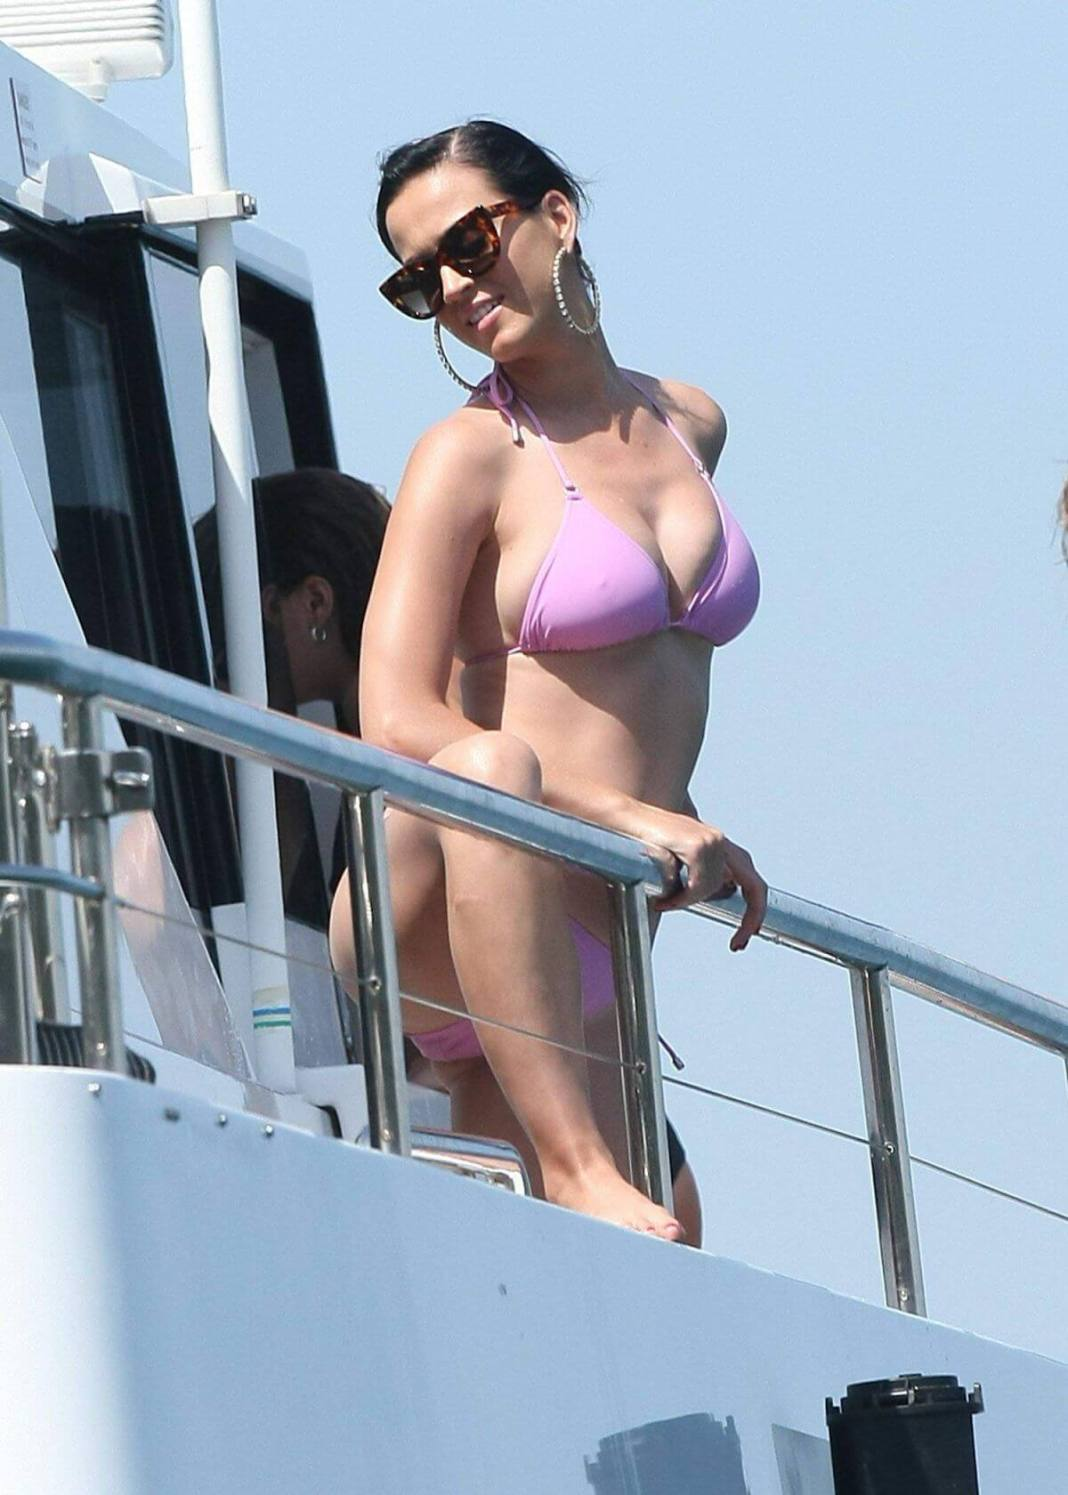 Hottest Singer Katy Perry Bikini Pictures 2020